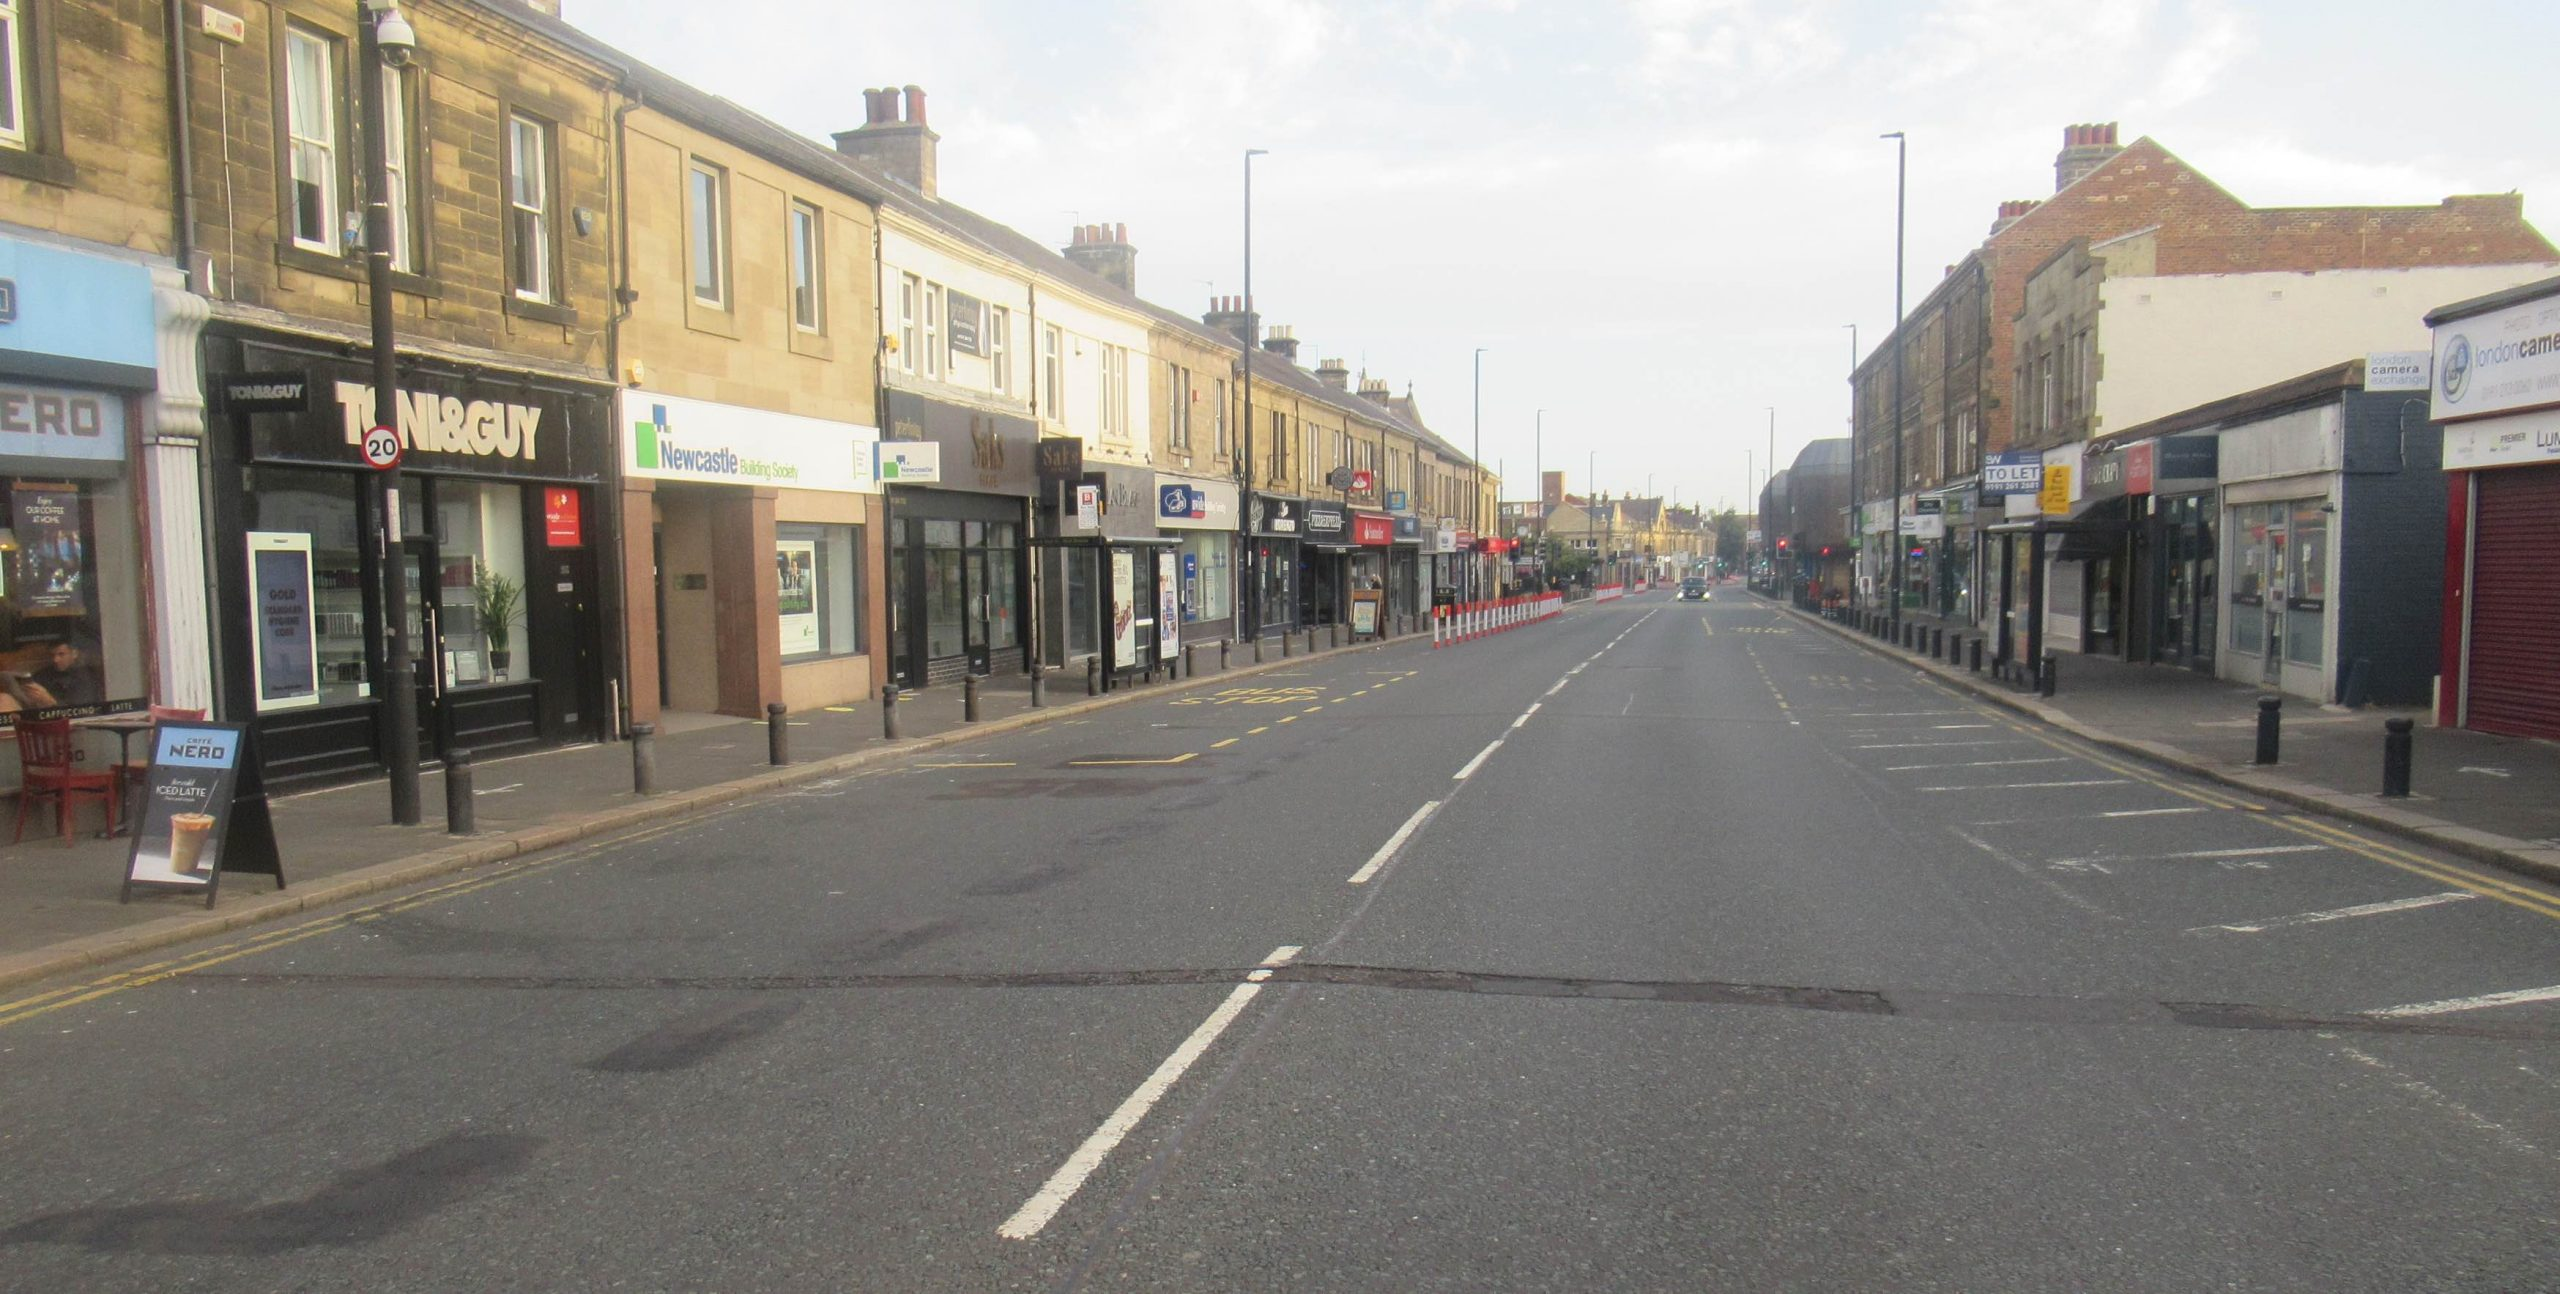 Gosforth High Street looking north from the County showing a very wide road with no measures